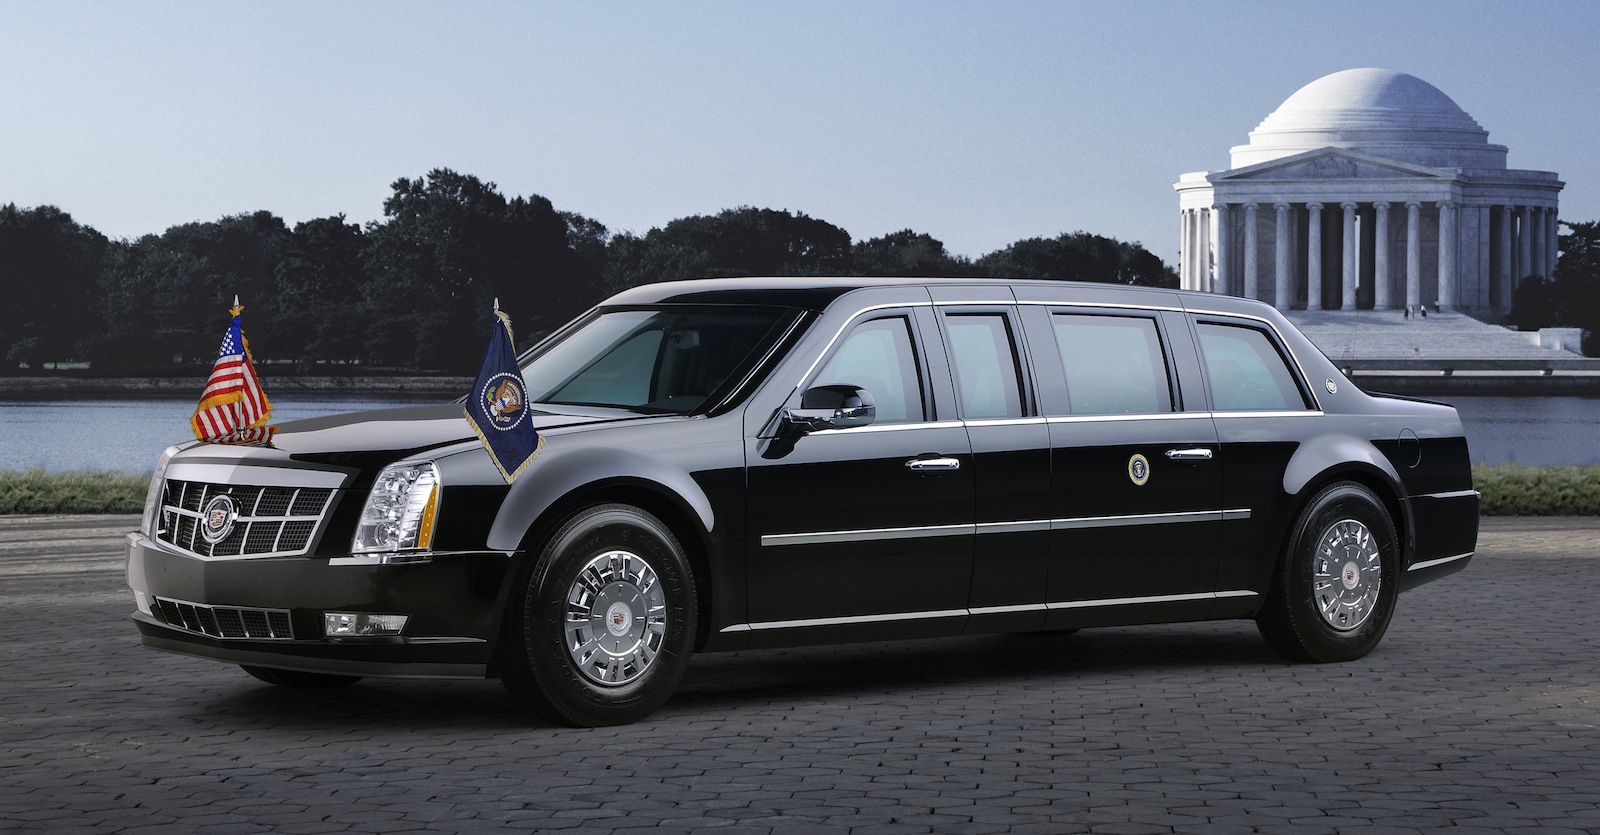 president obama u0026 39 s limousine  u0026 39 the beast u0026 39  breaks down in israel